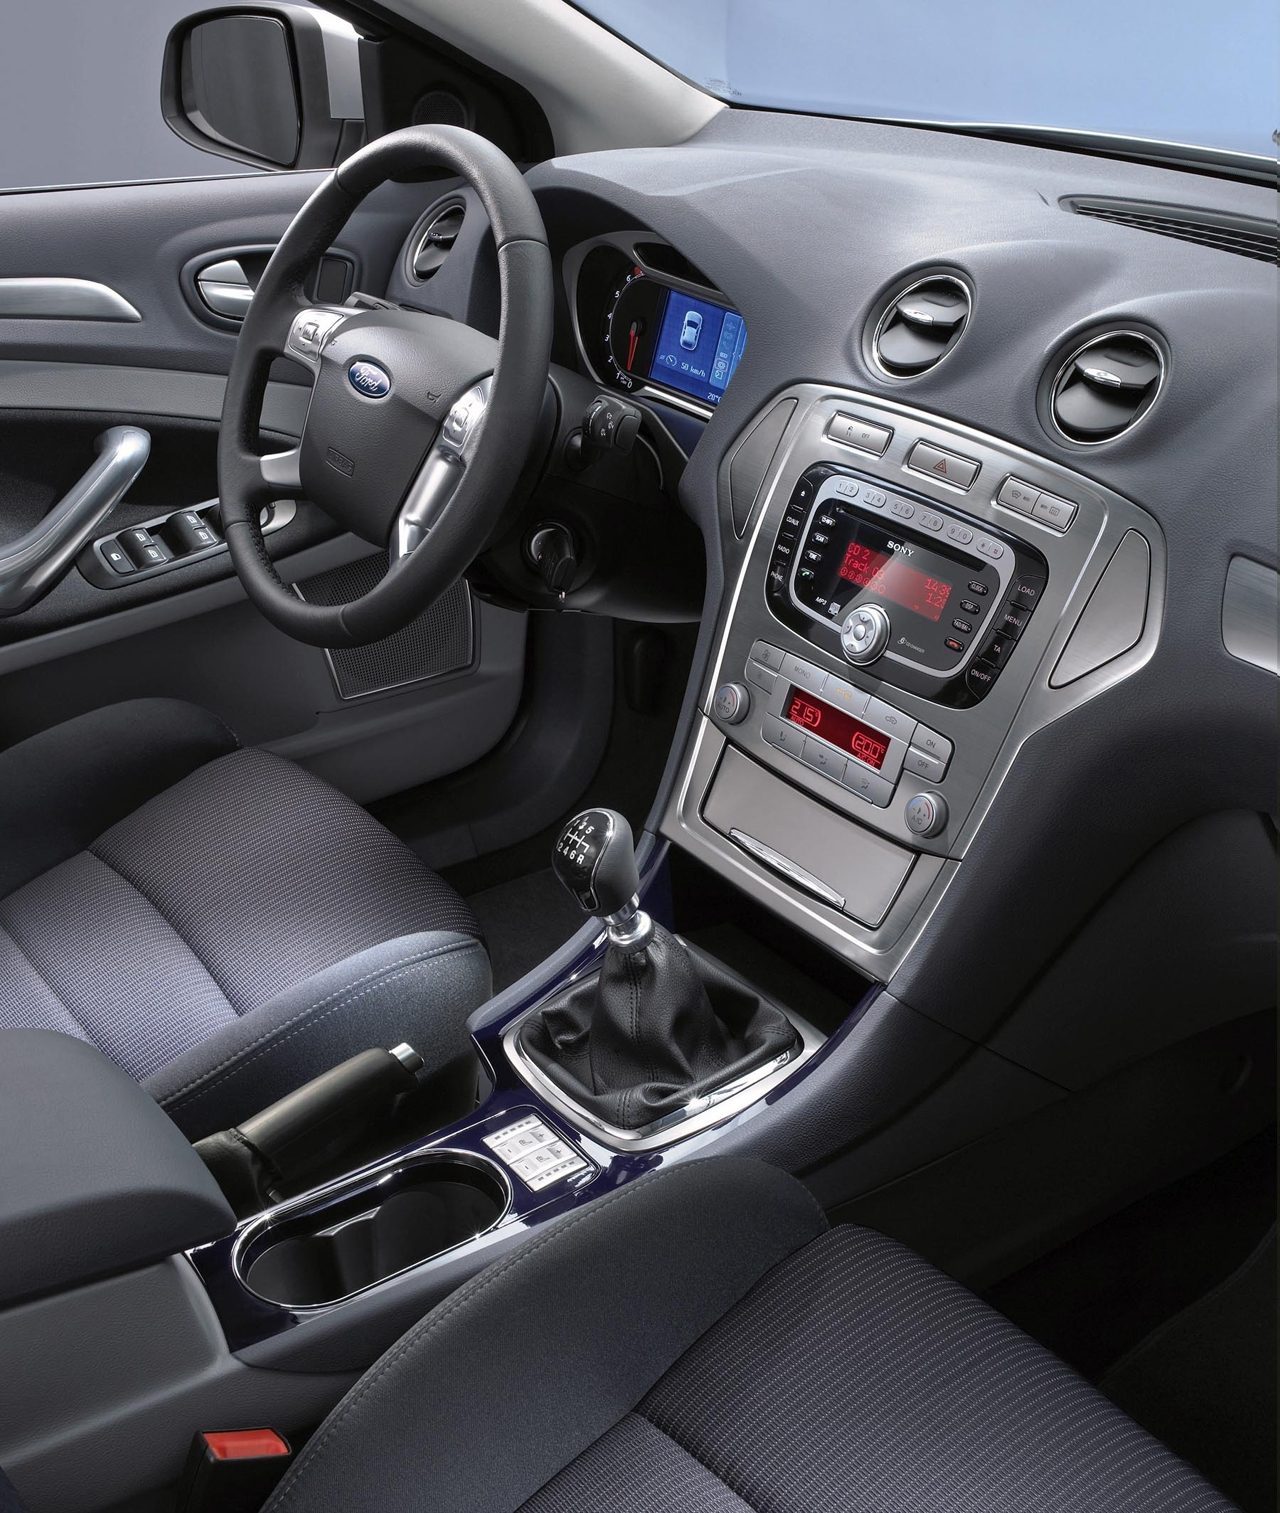 Ford mondeo review and photos - Ford mondeo interior ...